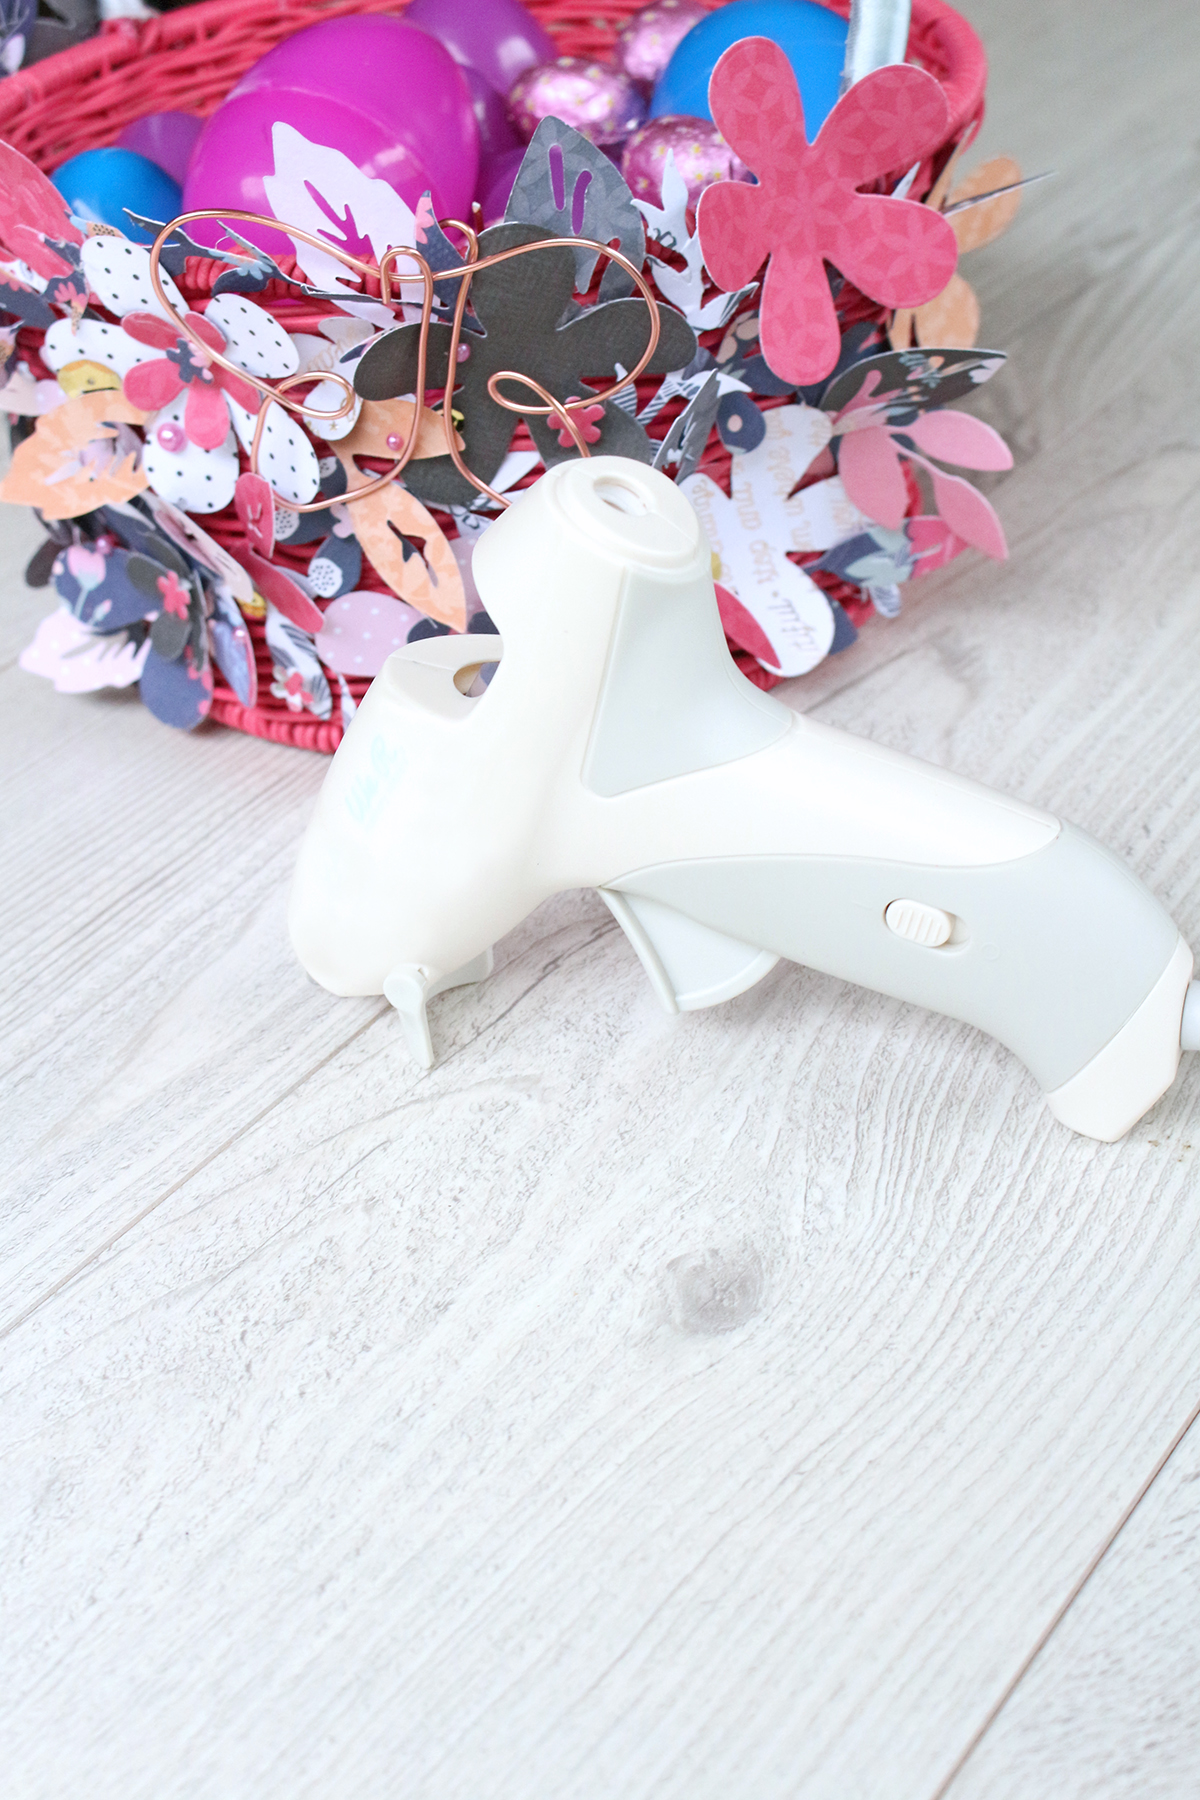 USB Power Mini Glue Gun by We R Memory Keepers